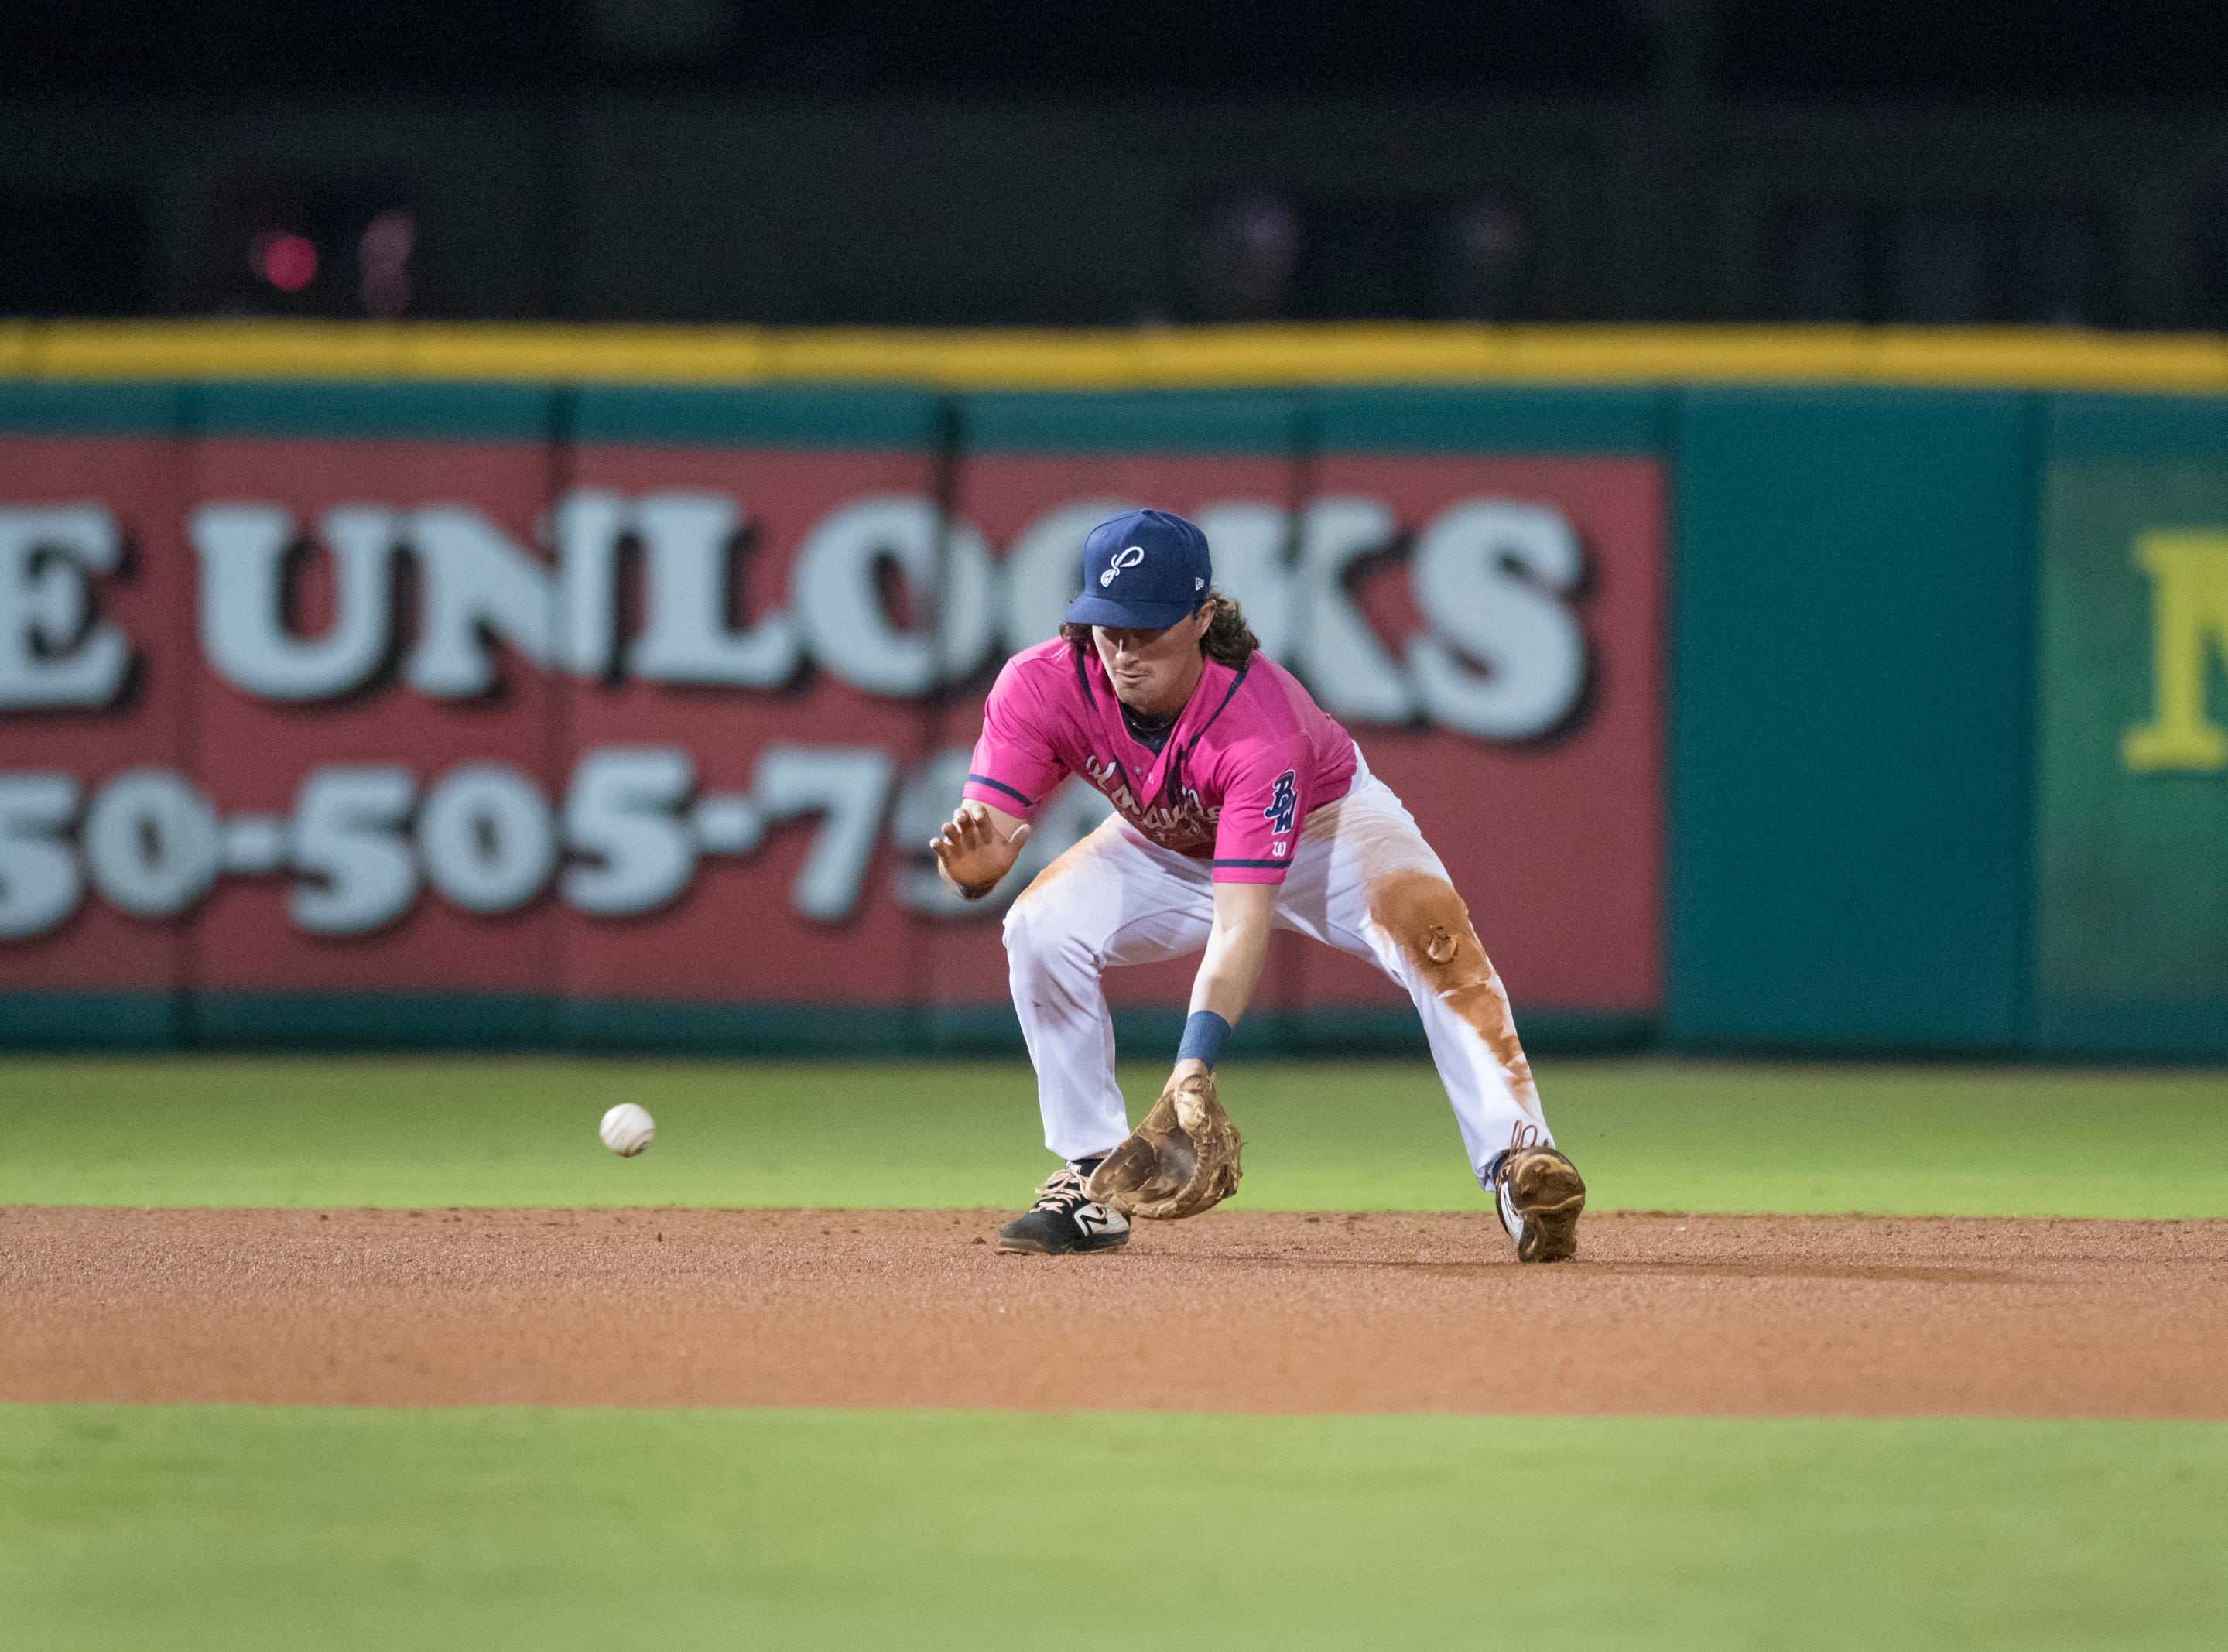 Shortstop Jordan Gore (10) scoops up a grounder for an out during the Jacksonville Jumbo Shrimp vs Pensacola Blue Wahoos baseball game in Pensacola on Friday, April 12, 2019.